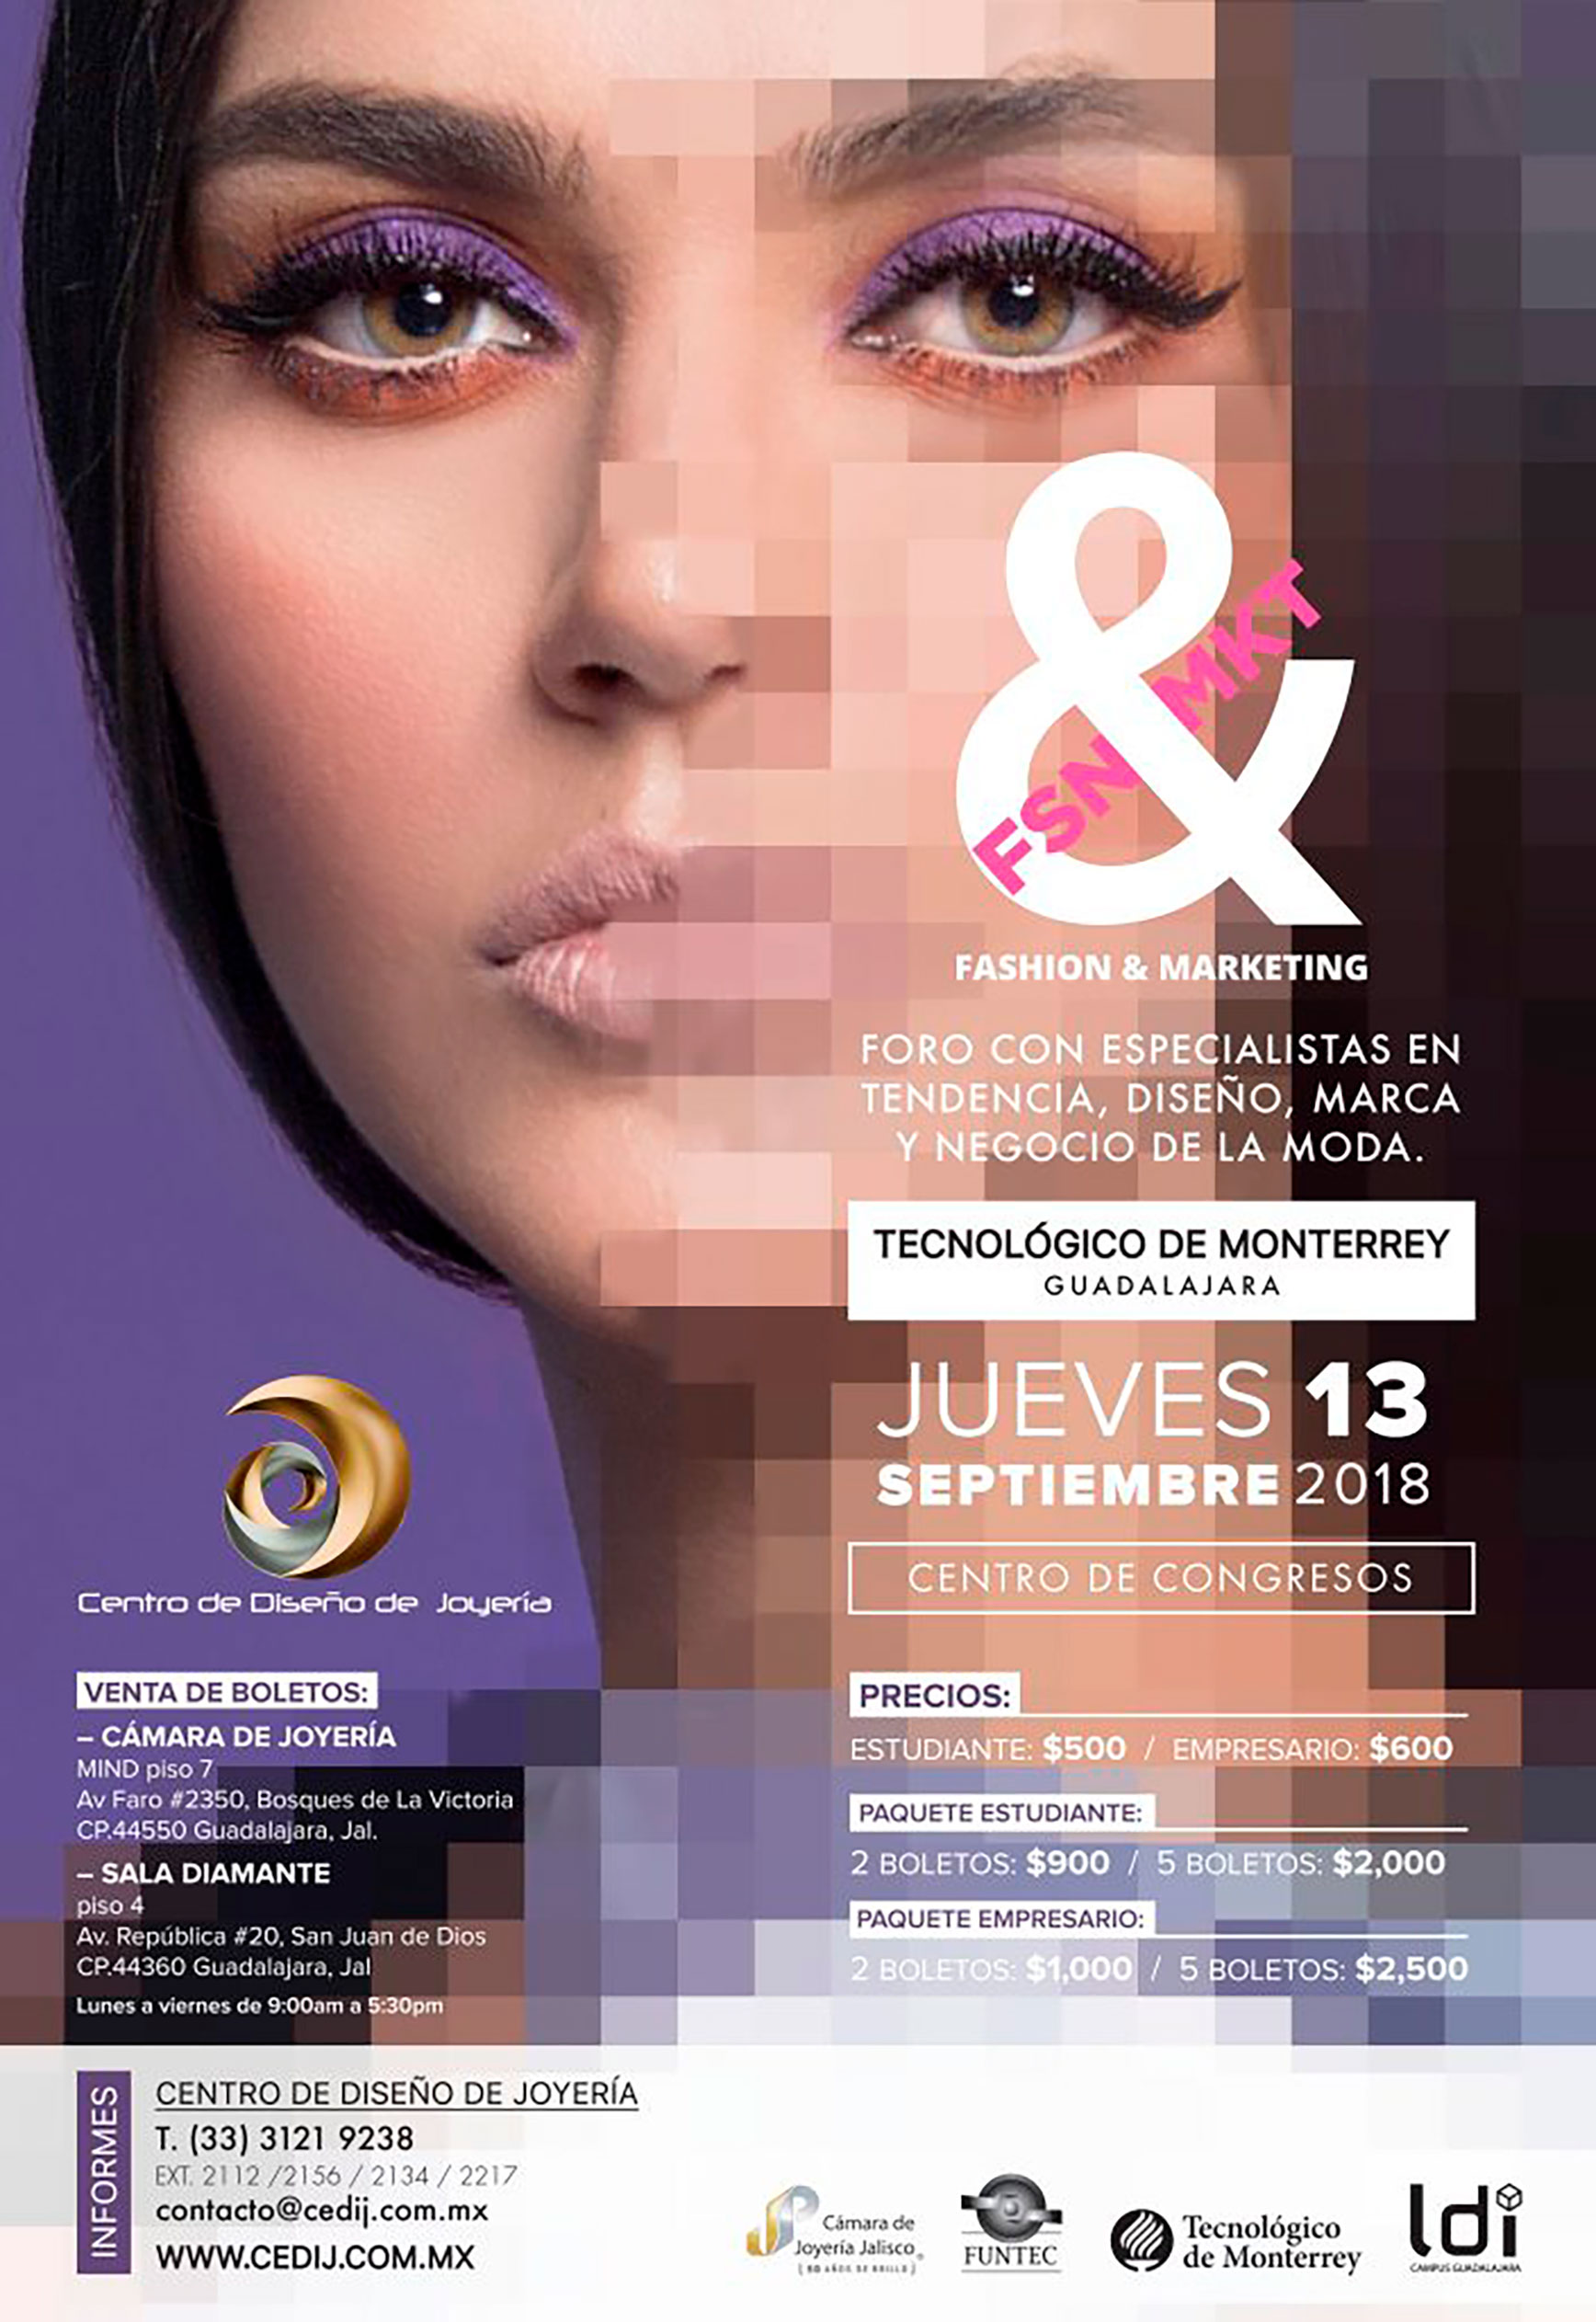 Foro Fashion & Marketing 2018 - 13 de Septiembre en Tec de Monterrey Campus Guadalajara